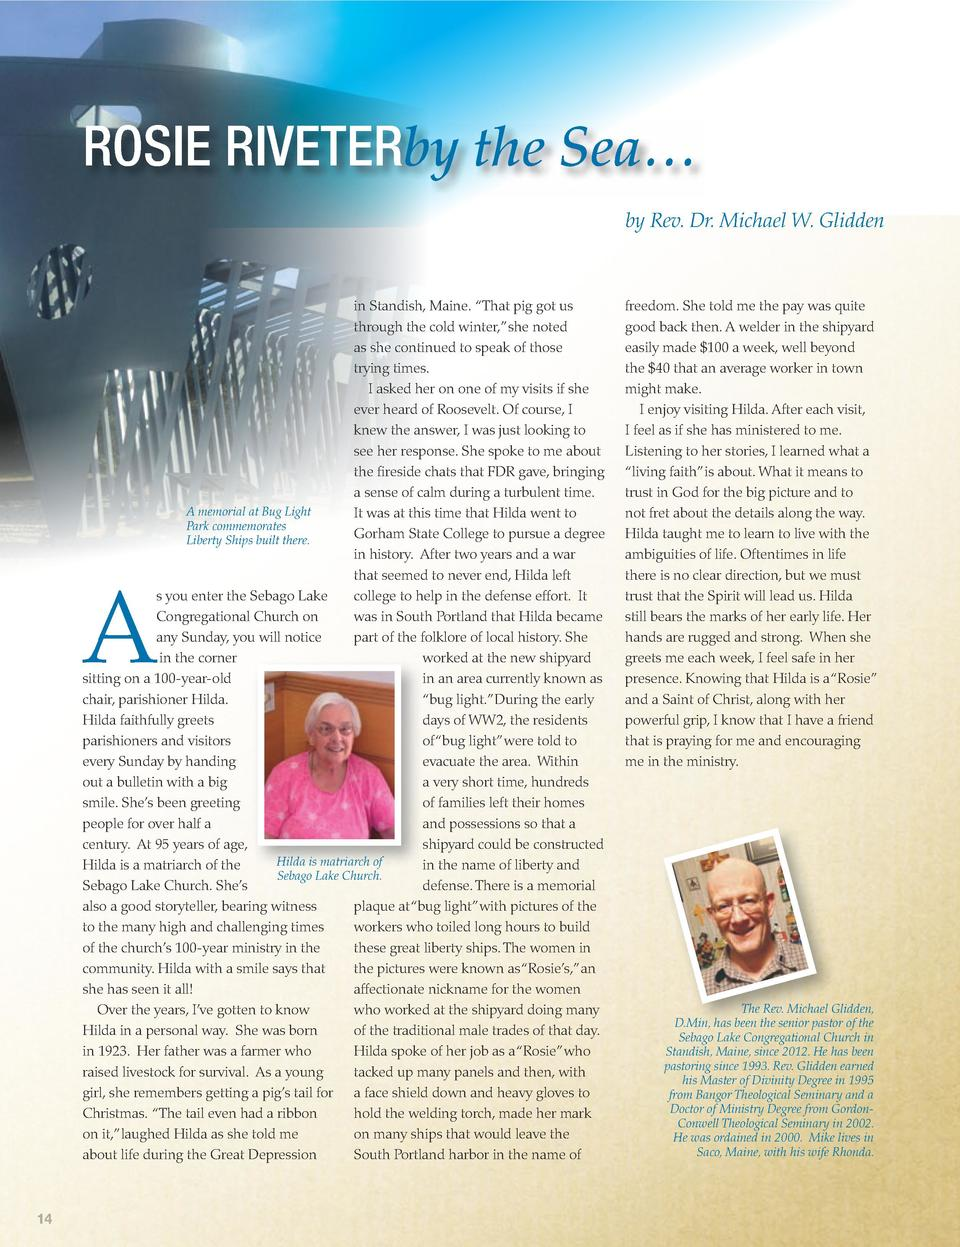 ROSIE RIVETERby the Sea    by Rev. Dr. Michael W. Glidden  in Standish, Maine.    That pig got us through the cold winter,...